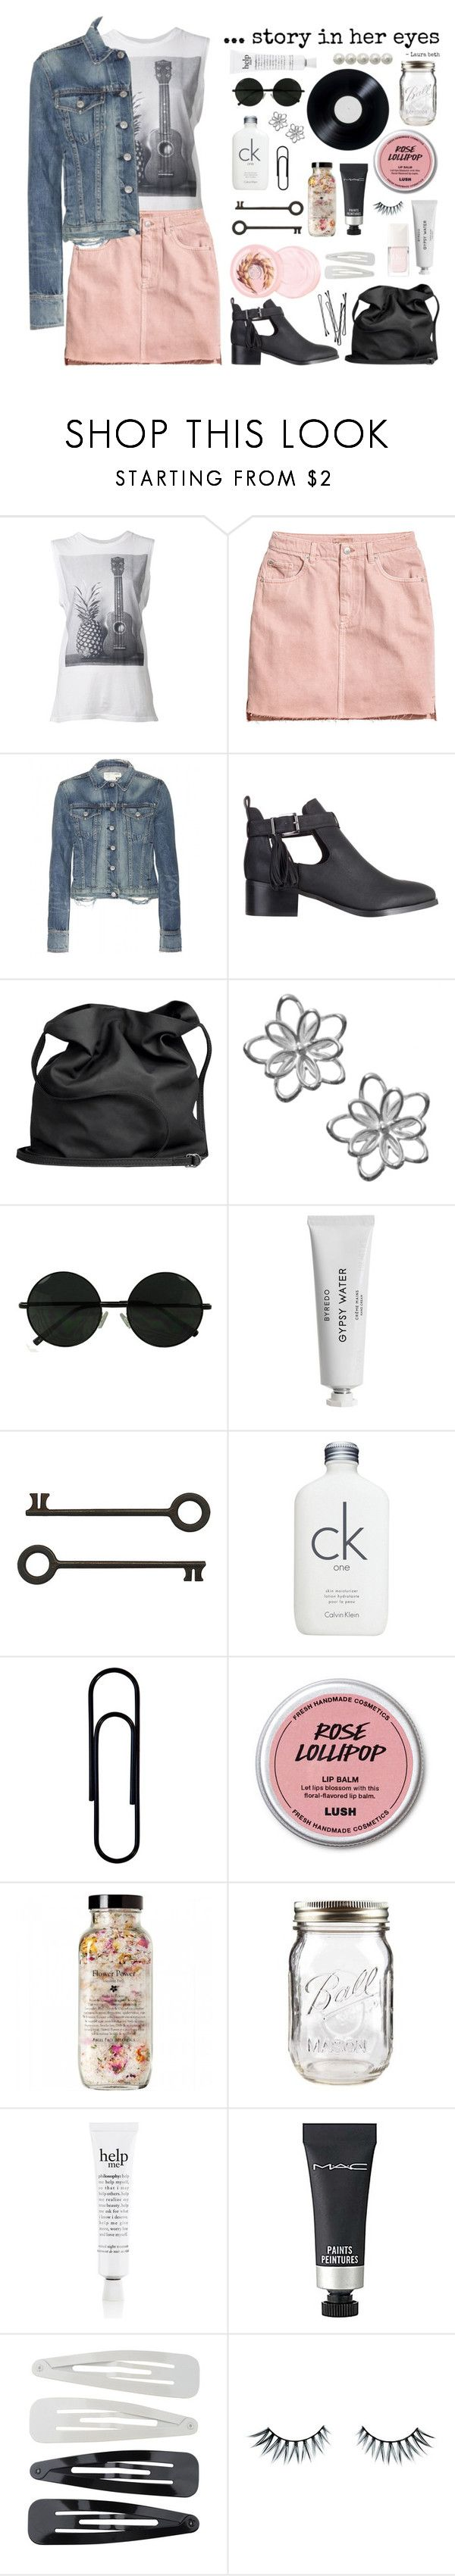 """""""///The music in her eyes///"""" by tessicat ❤ liked on Polyvore featuring Sundry, H&M, rag & bone, SPURR, Ann Demeulemeester, The Body Shop, Christian Dior, Calvin Klein, BOBBY and philosophy"""